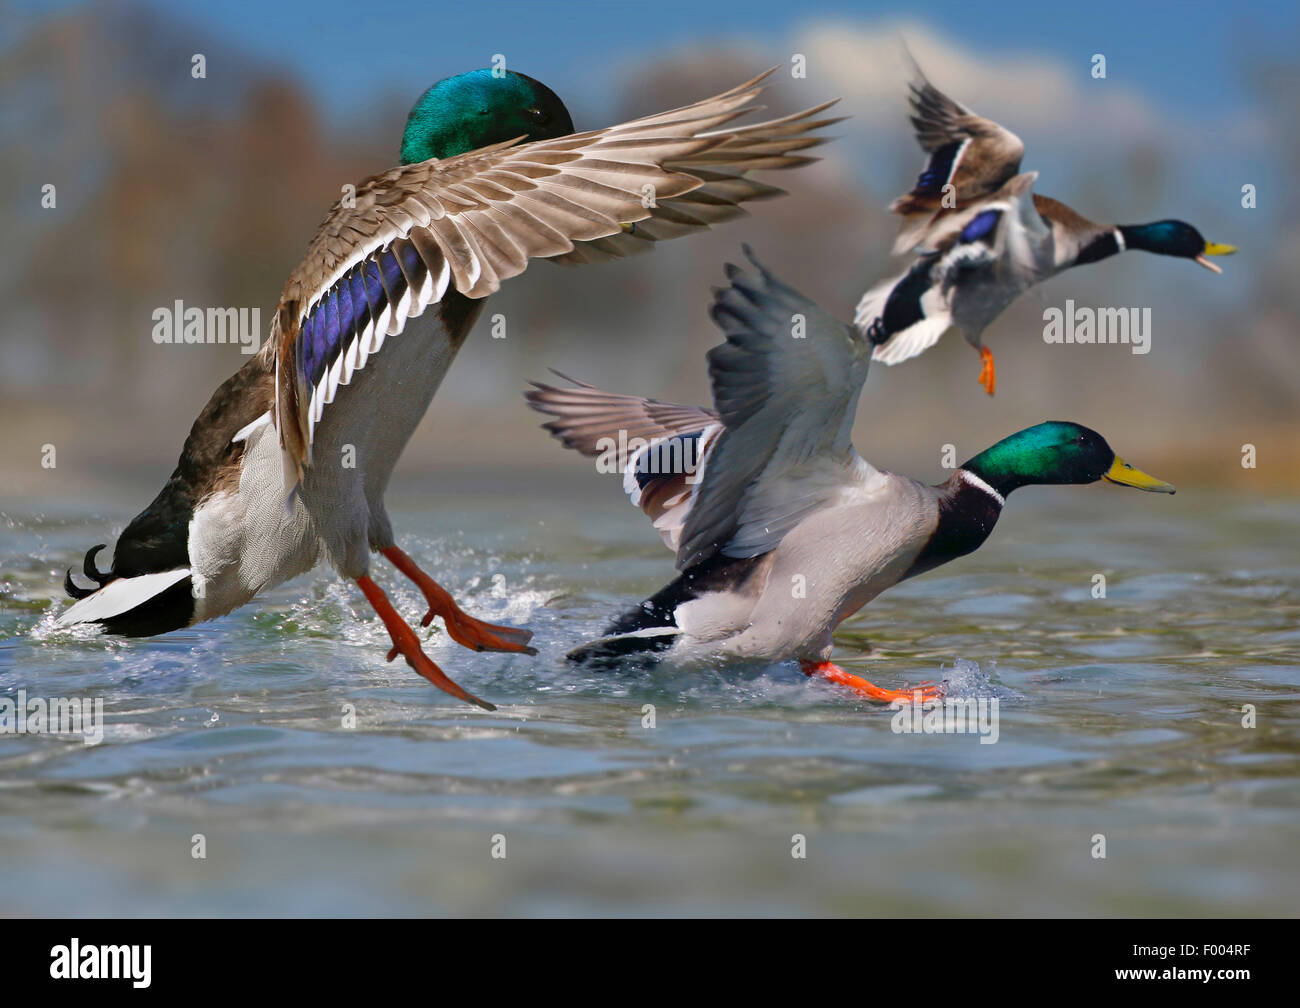 mallard (Anas platyrhynchos), group of drakes land on watersurface, Germany - Stock Image